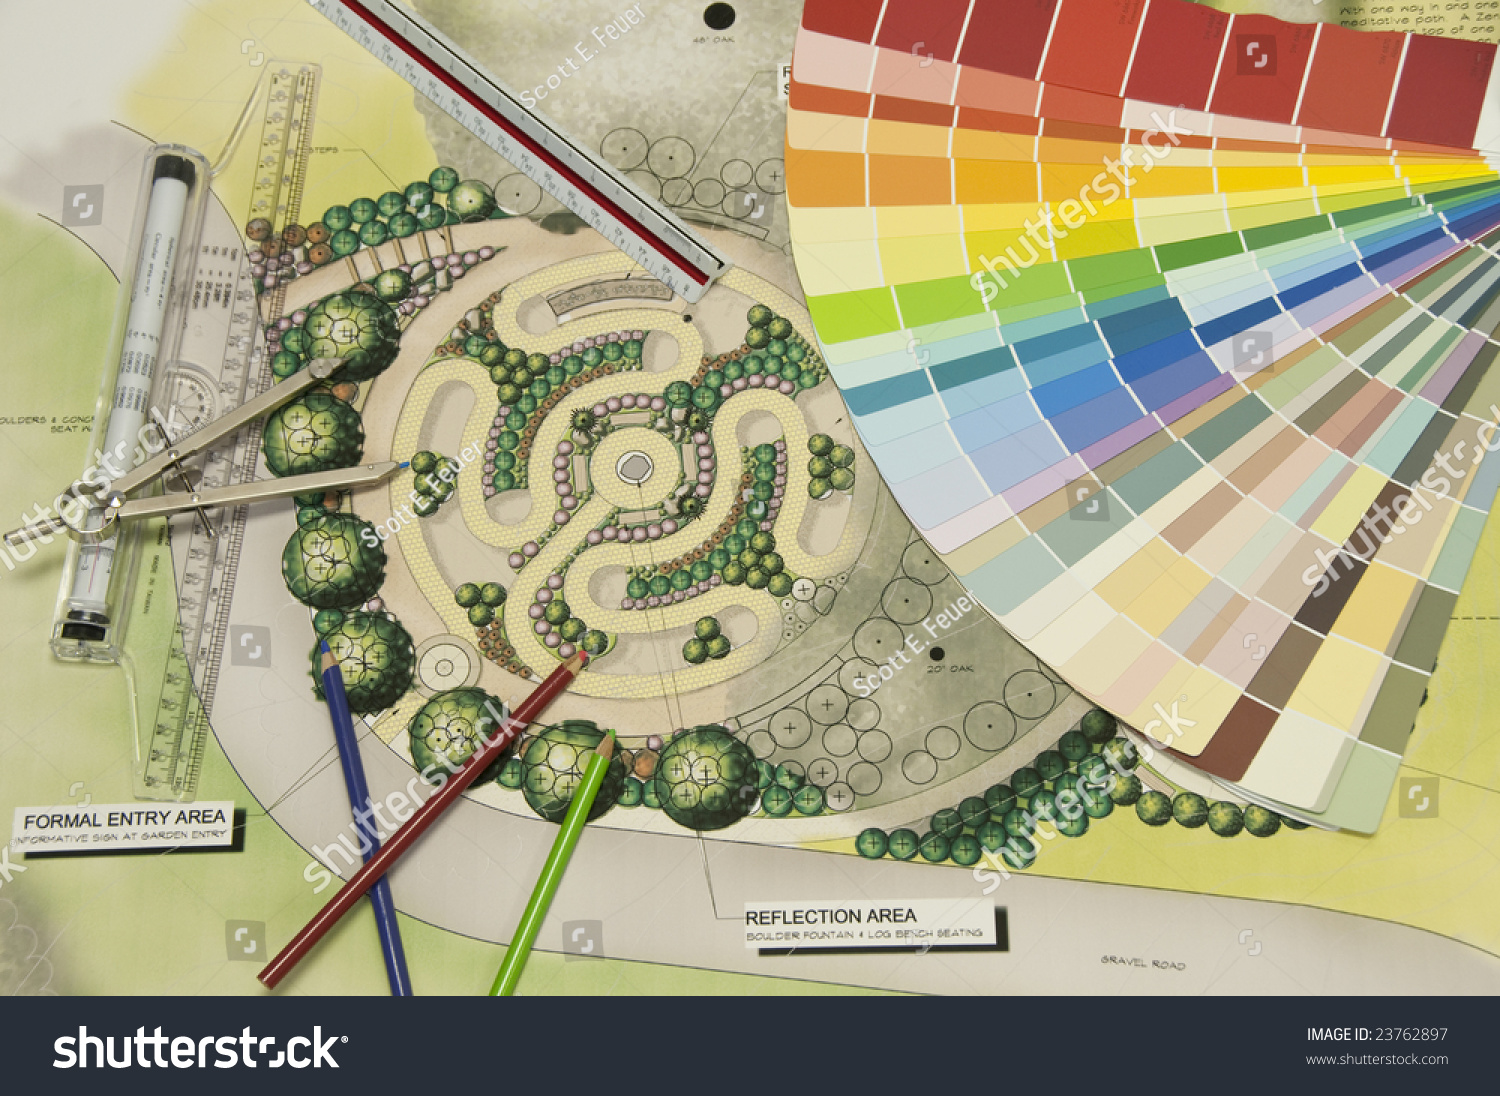 labyrinth landscape design with a color wheel and drafting